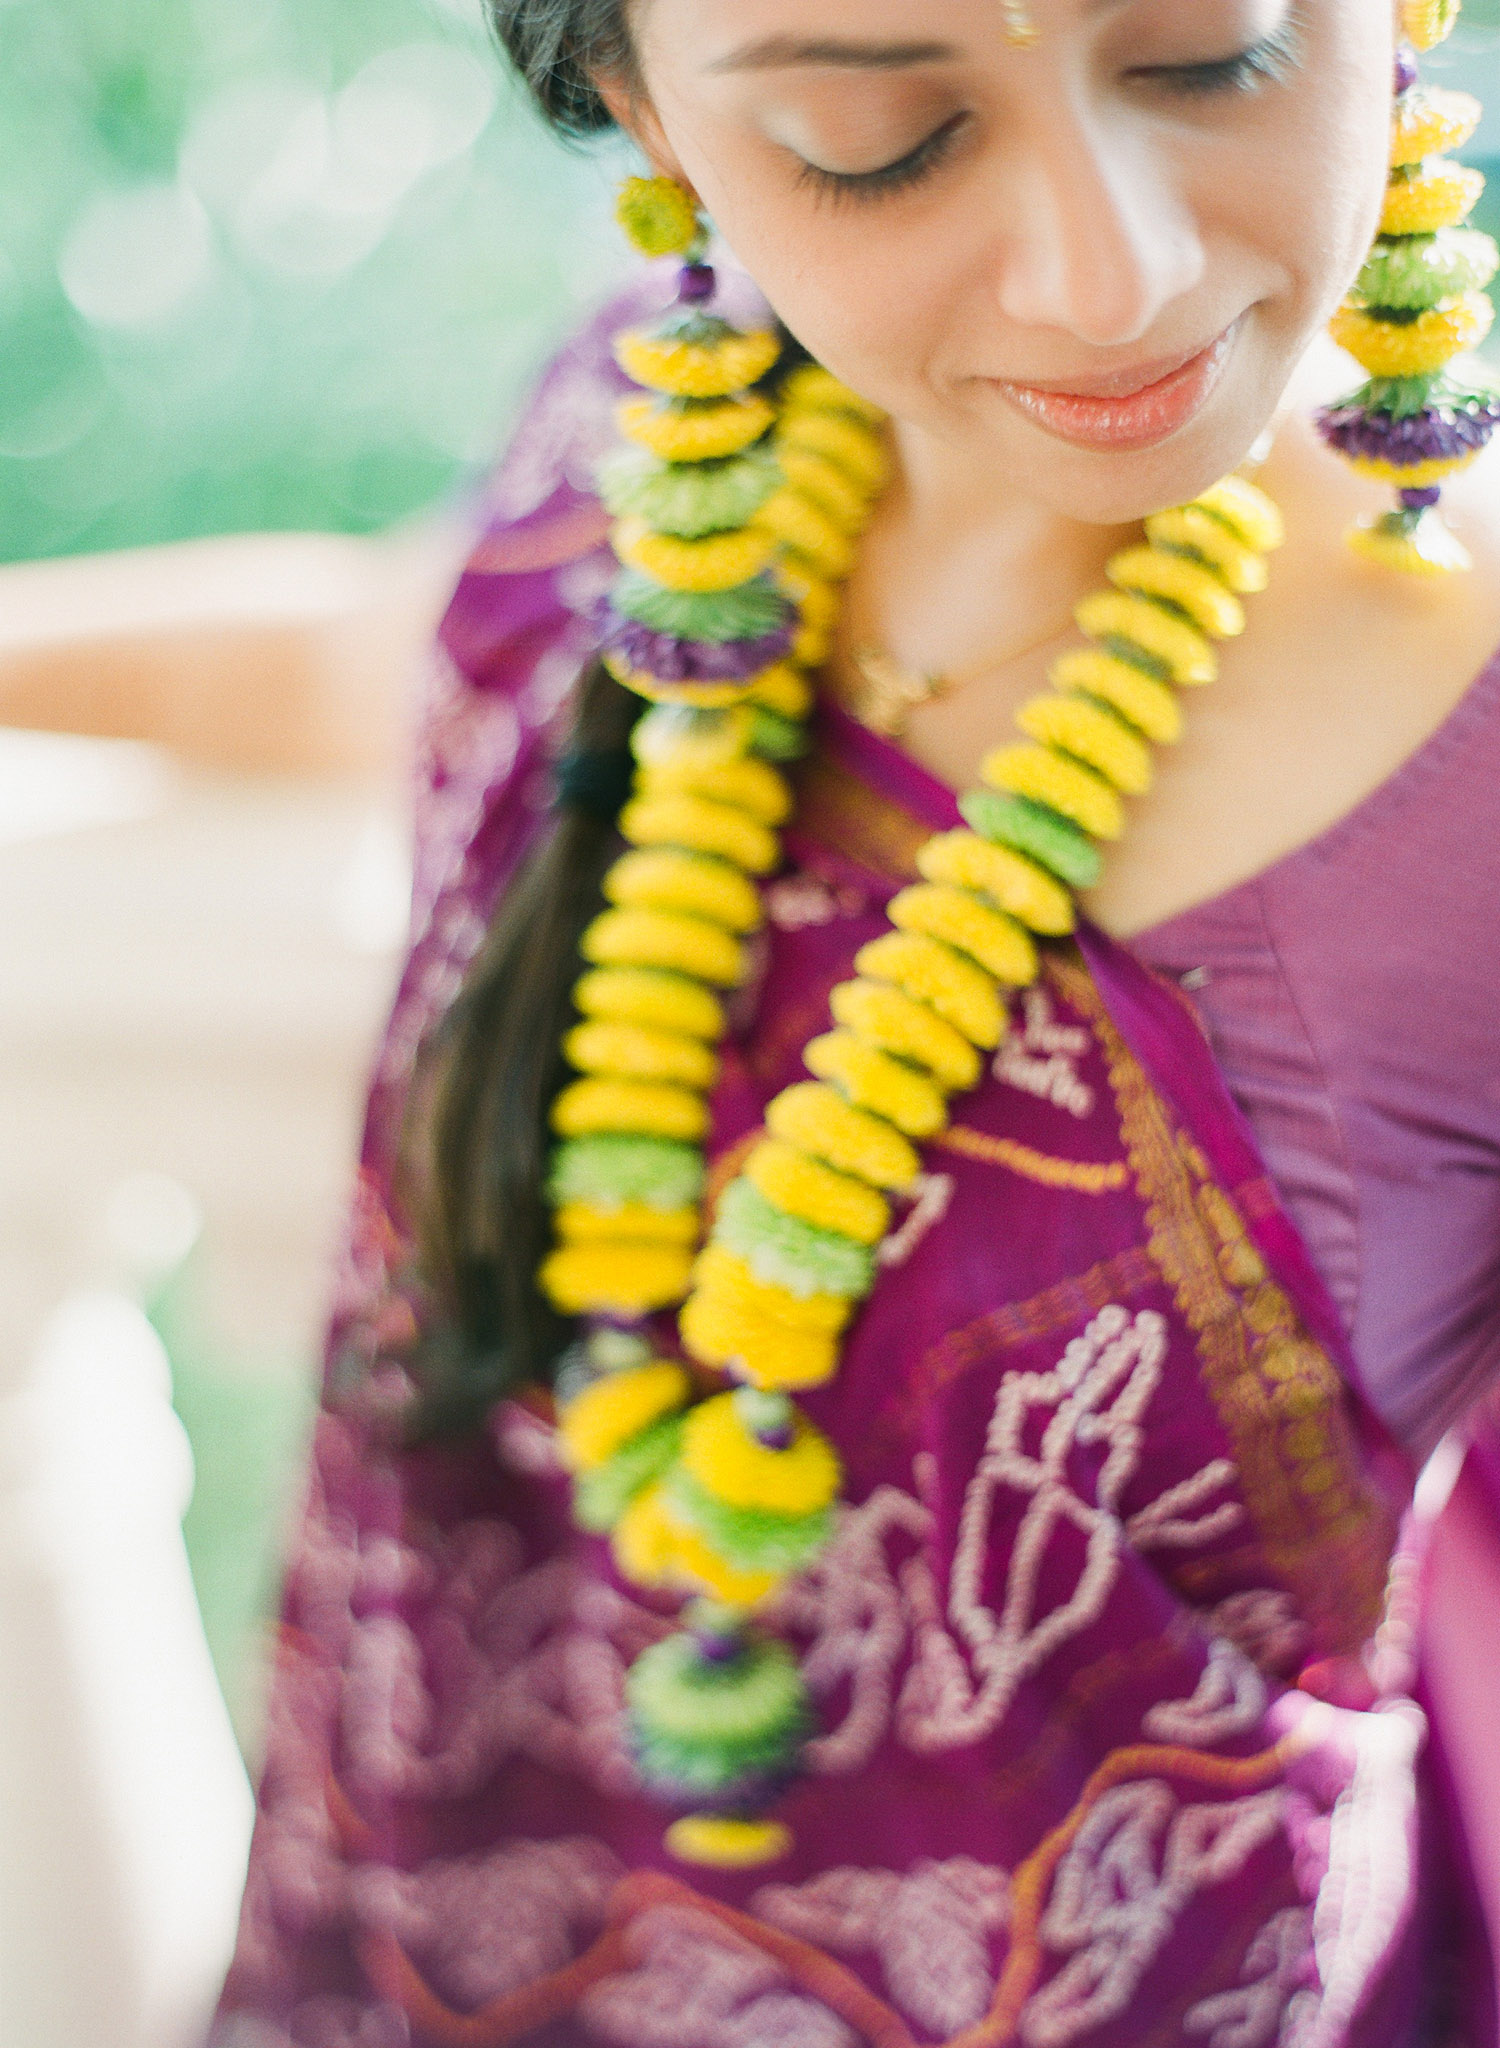 indian bride wears floral jewelry and a floral tikka and floral earrings and a purple sari at this mehndi ceremony in palm coast florida at the hammock beach resort indian wedding. Photographed by destination wedding photographer Lexia Frank, a top indian wedding photographer photographing indian weddings on film and shooting luxury indian weddings worldwide